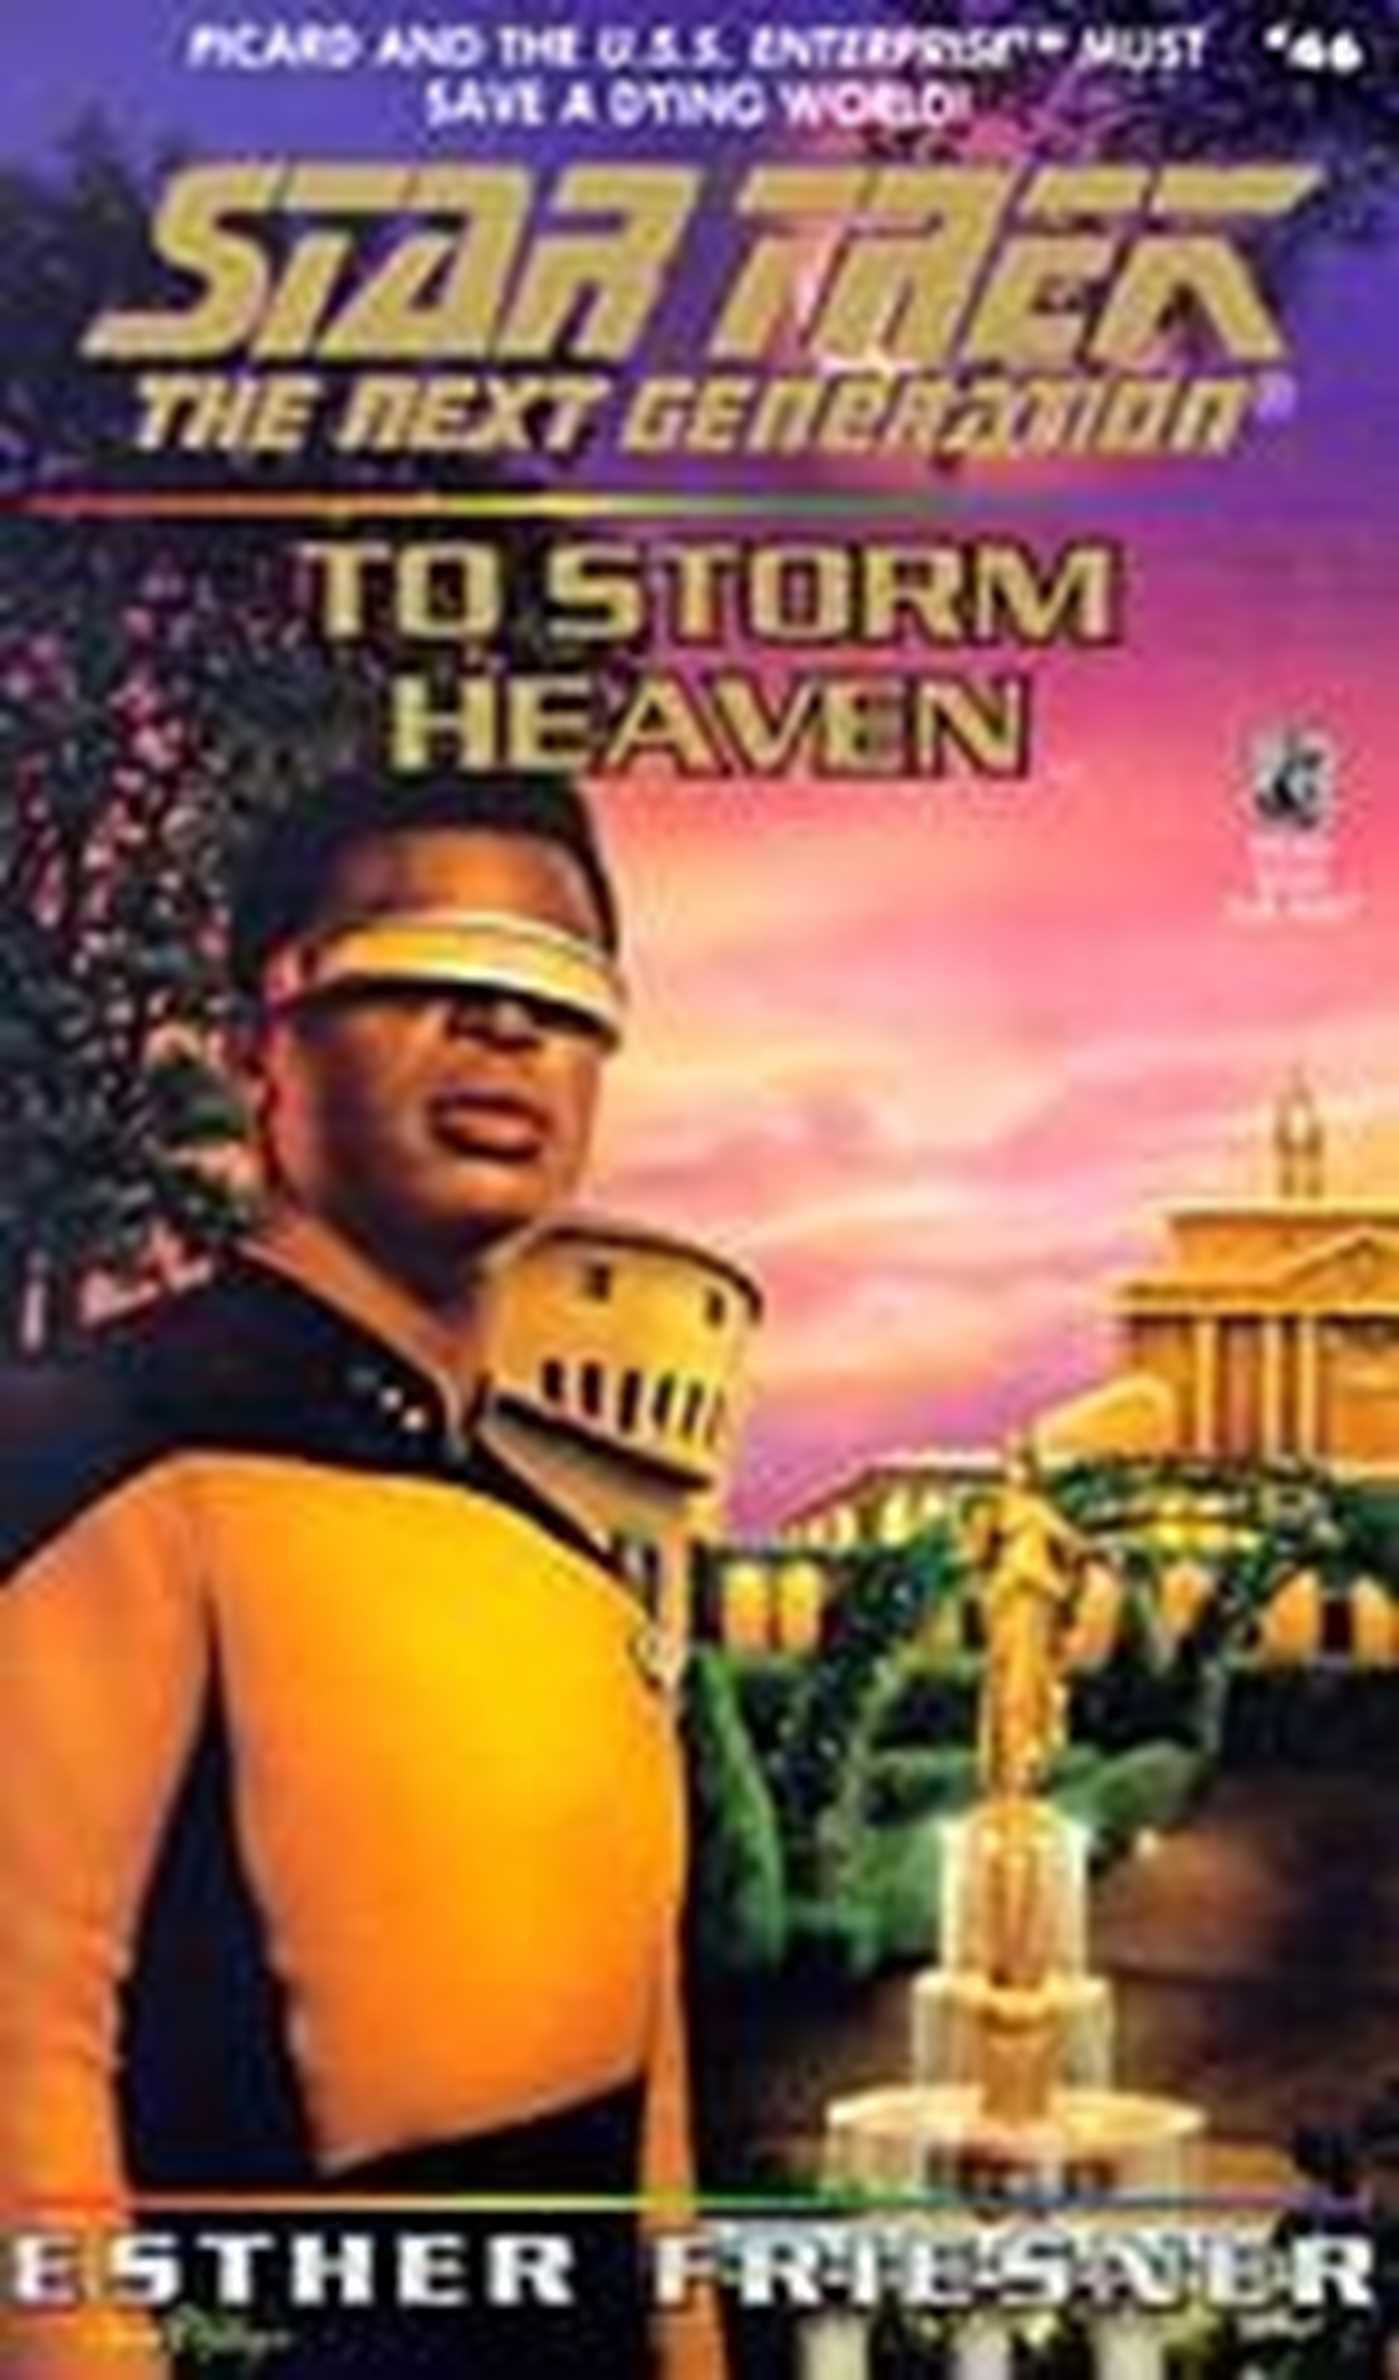 To-storm-heaven-9780743421256_hr